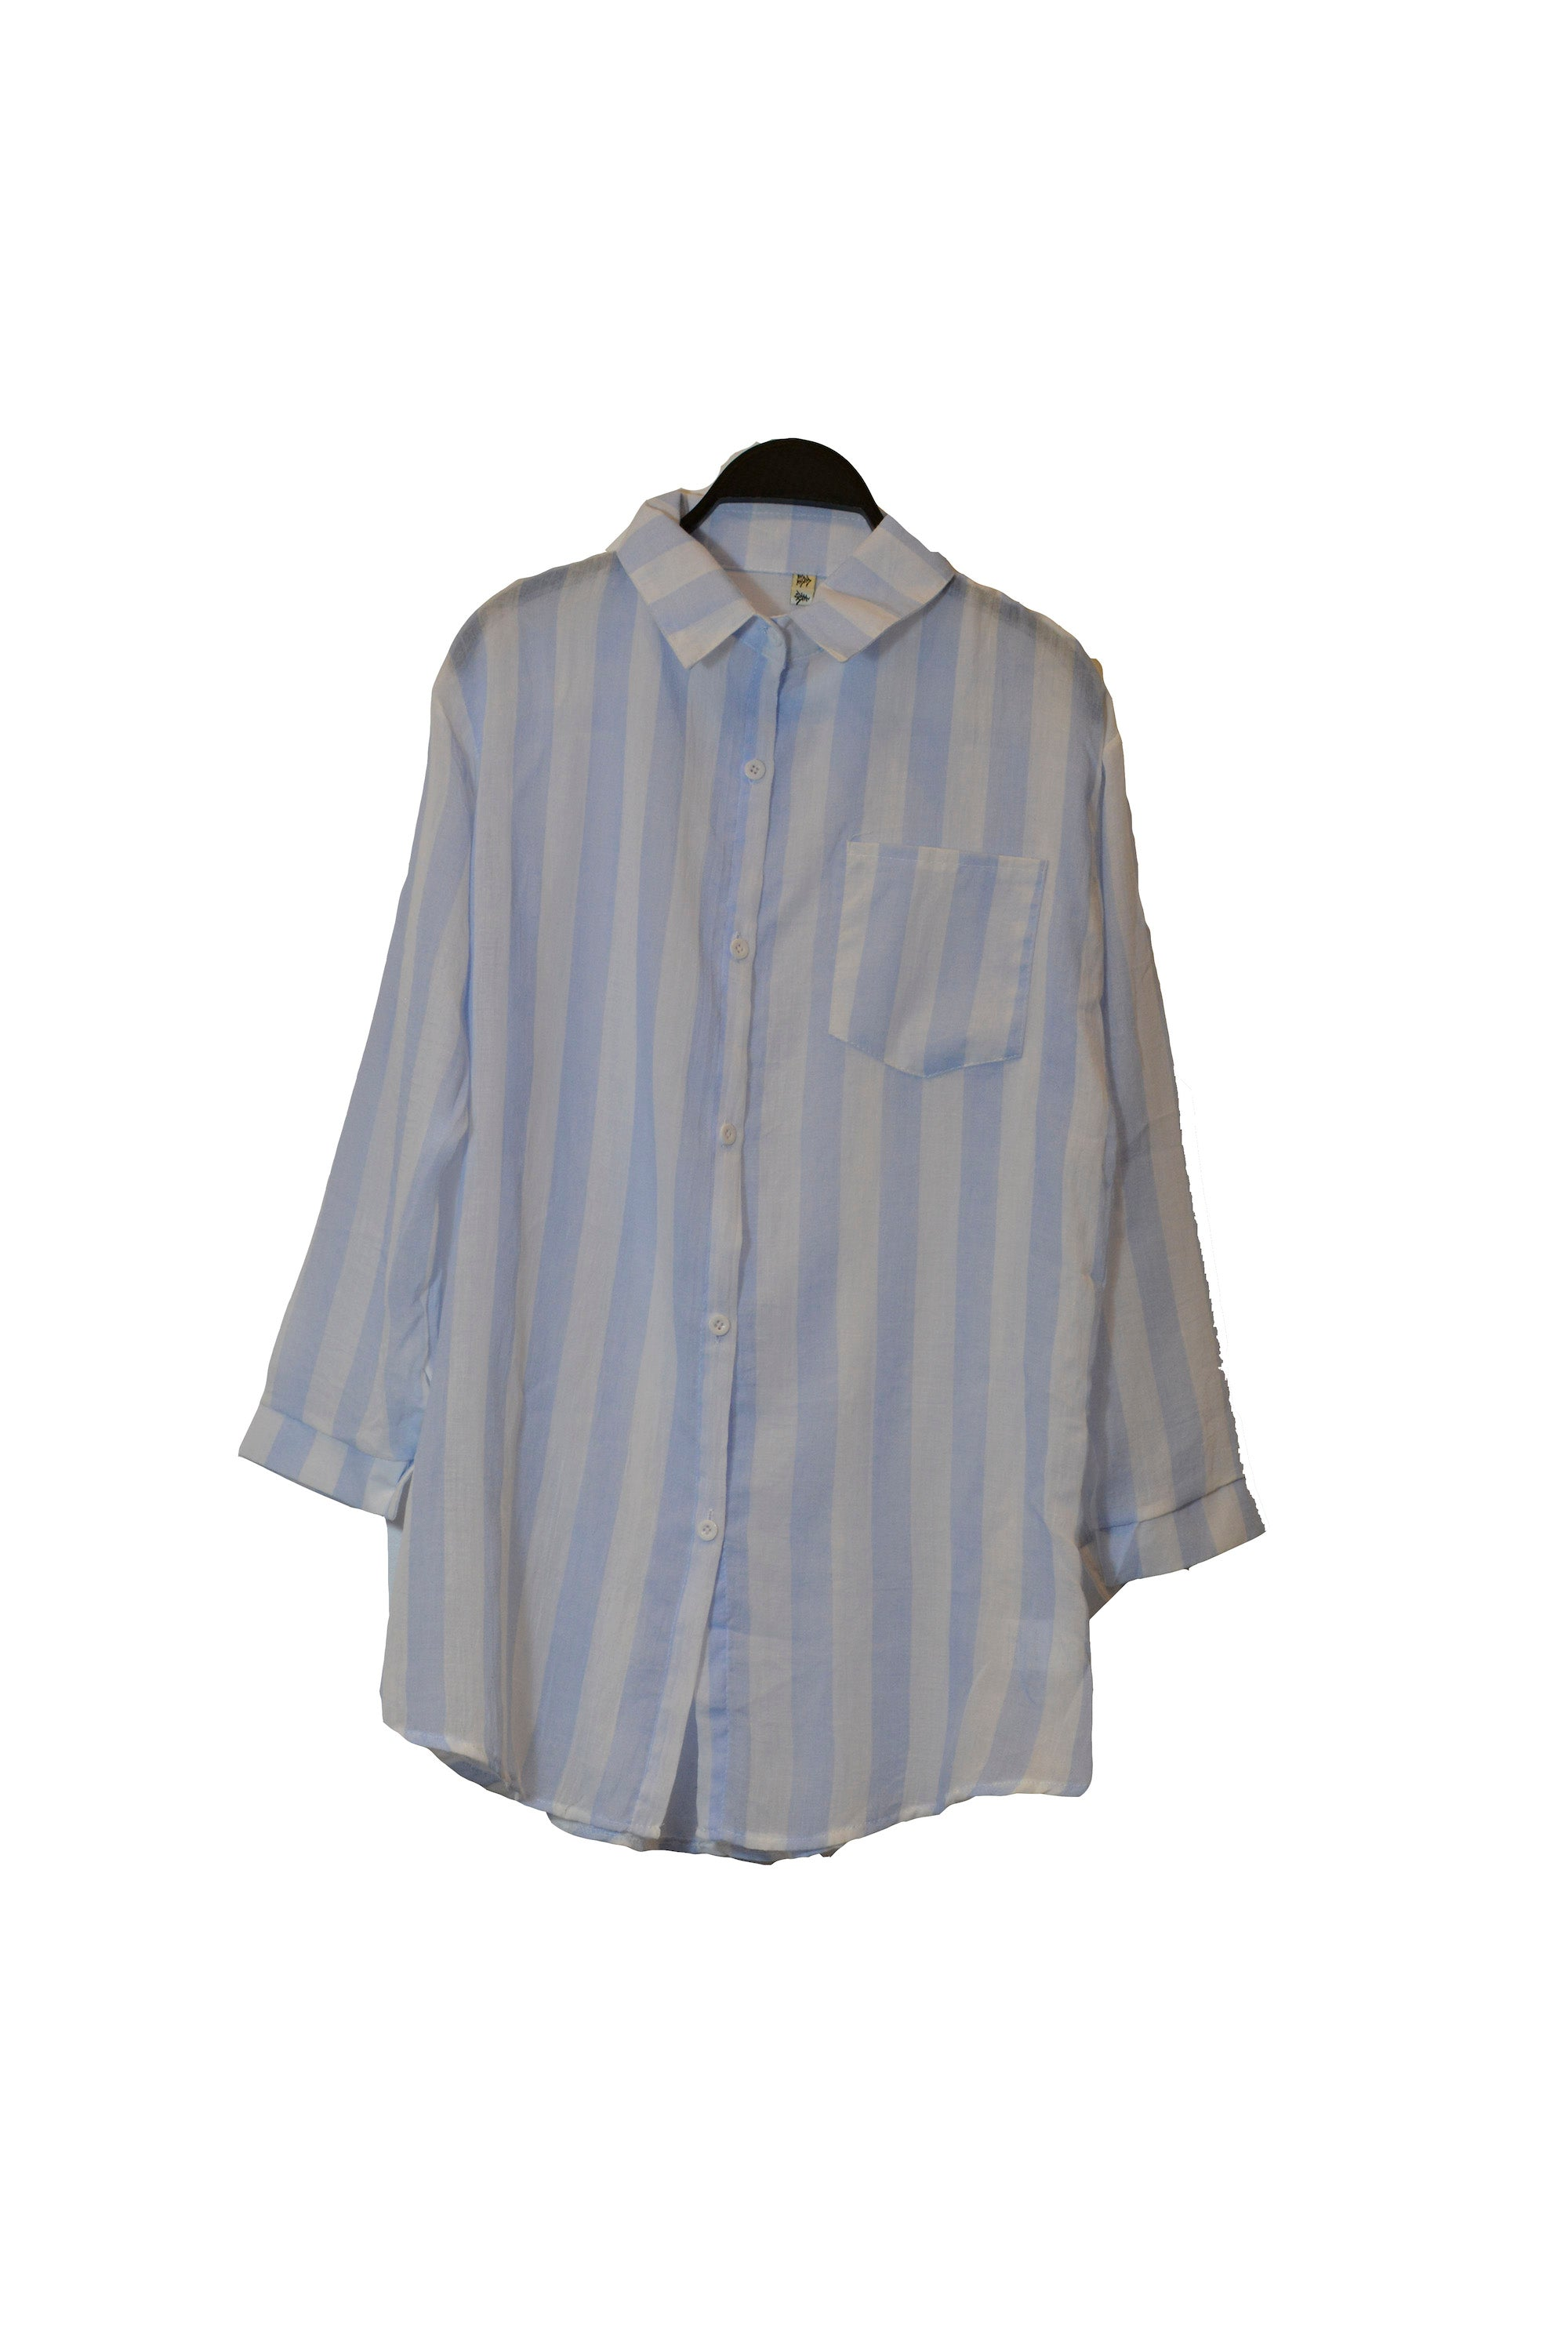 Blue Wide Vertical Stripe Shirt Button Down With Front Pockets